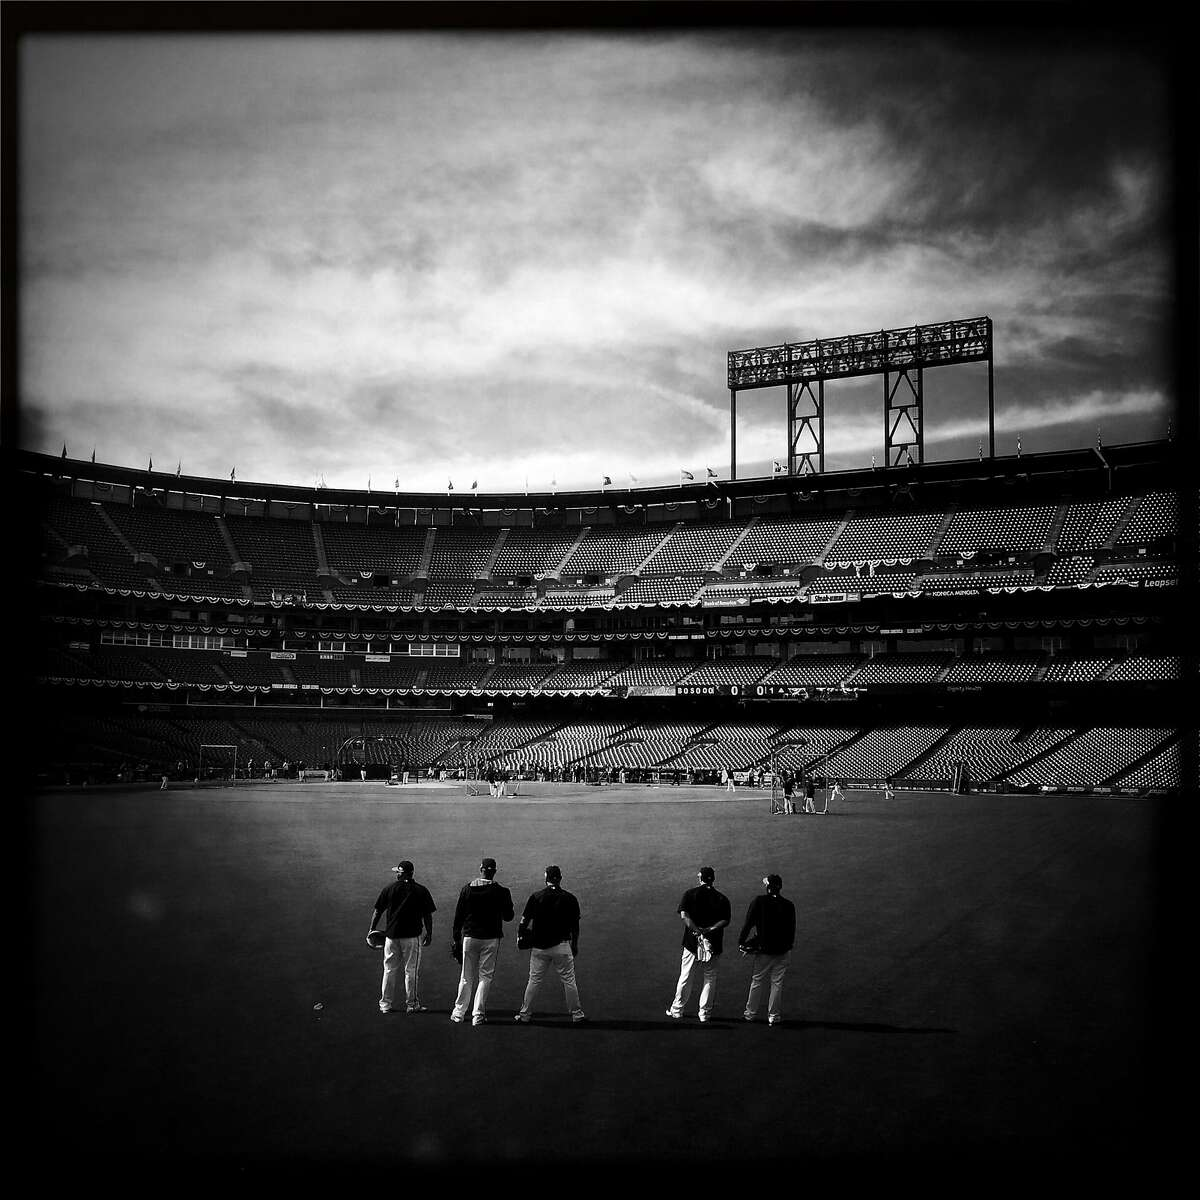 San Francisco Giants against St. Louis Cardinals in Game 5 of NLCS at AT&T Park in San Francisco, Calif. on October 16, 2014.